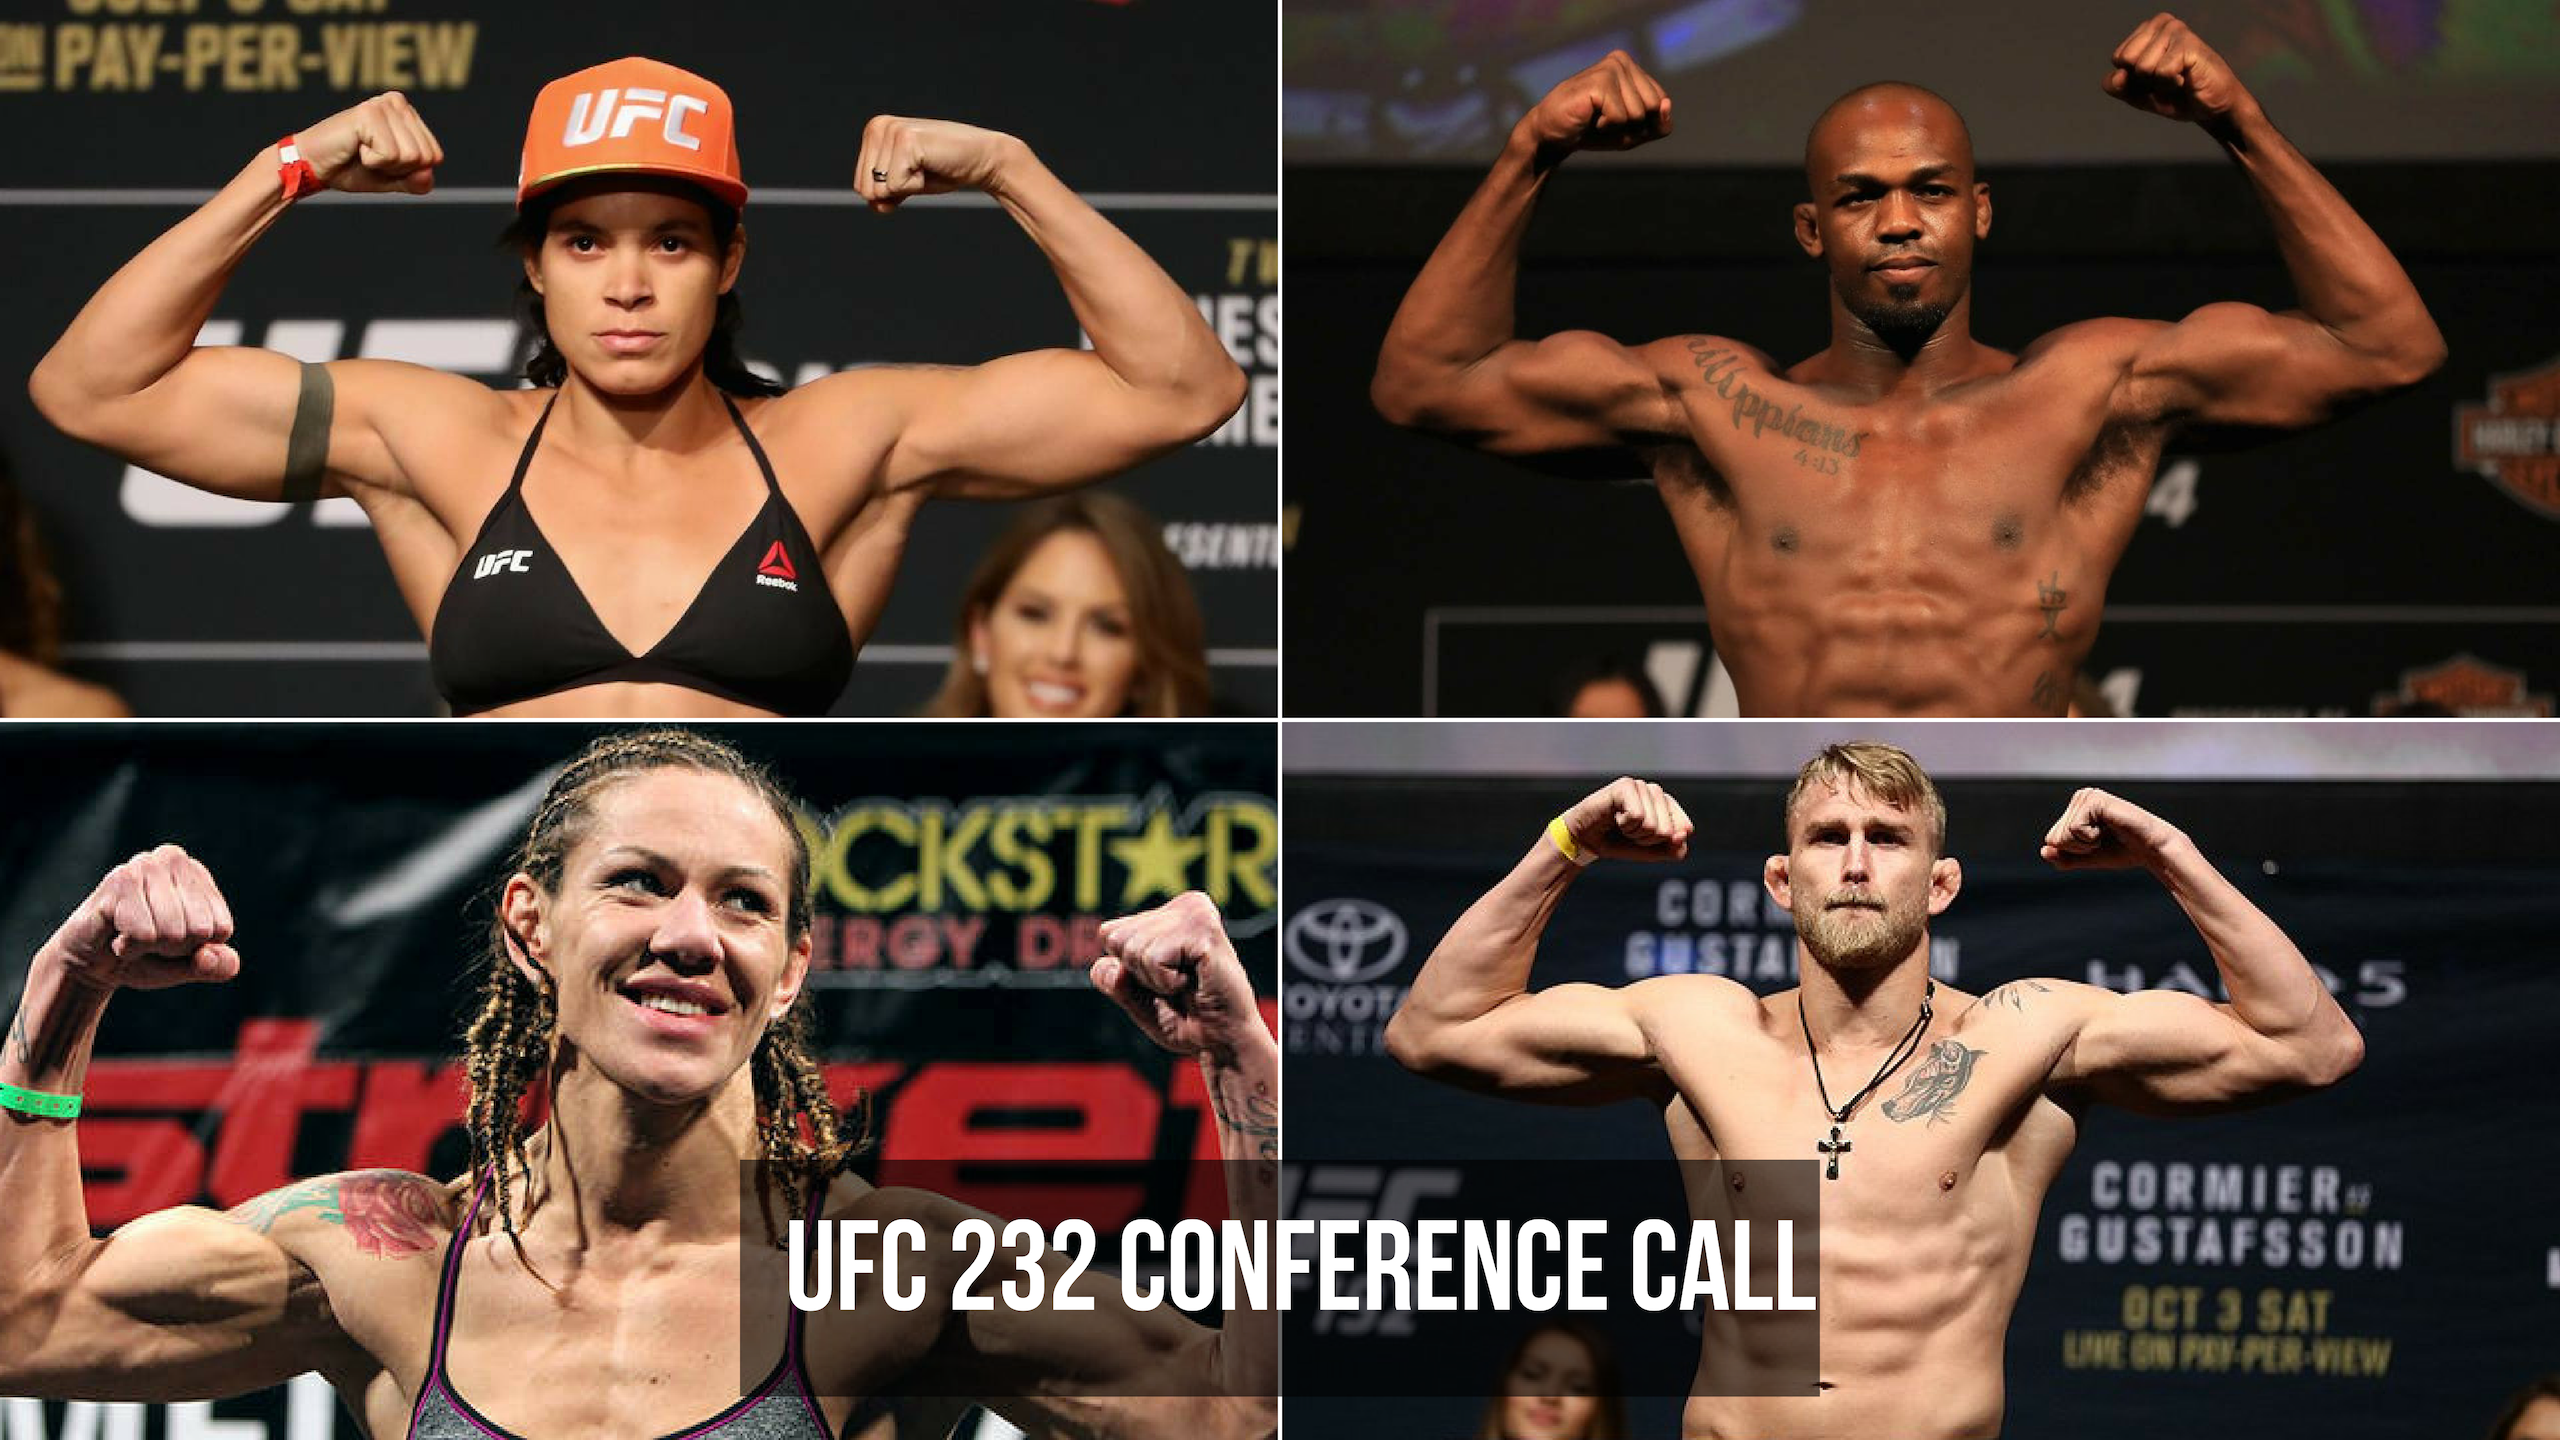 UFC 232 Conference call -